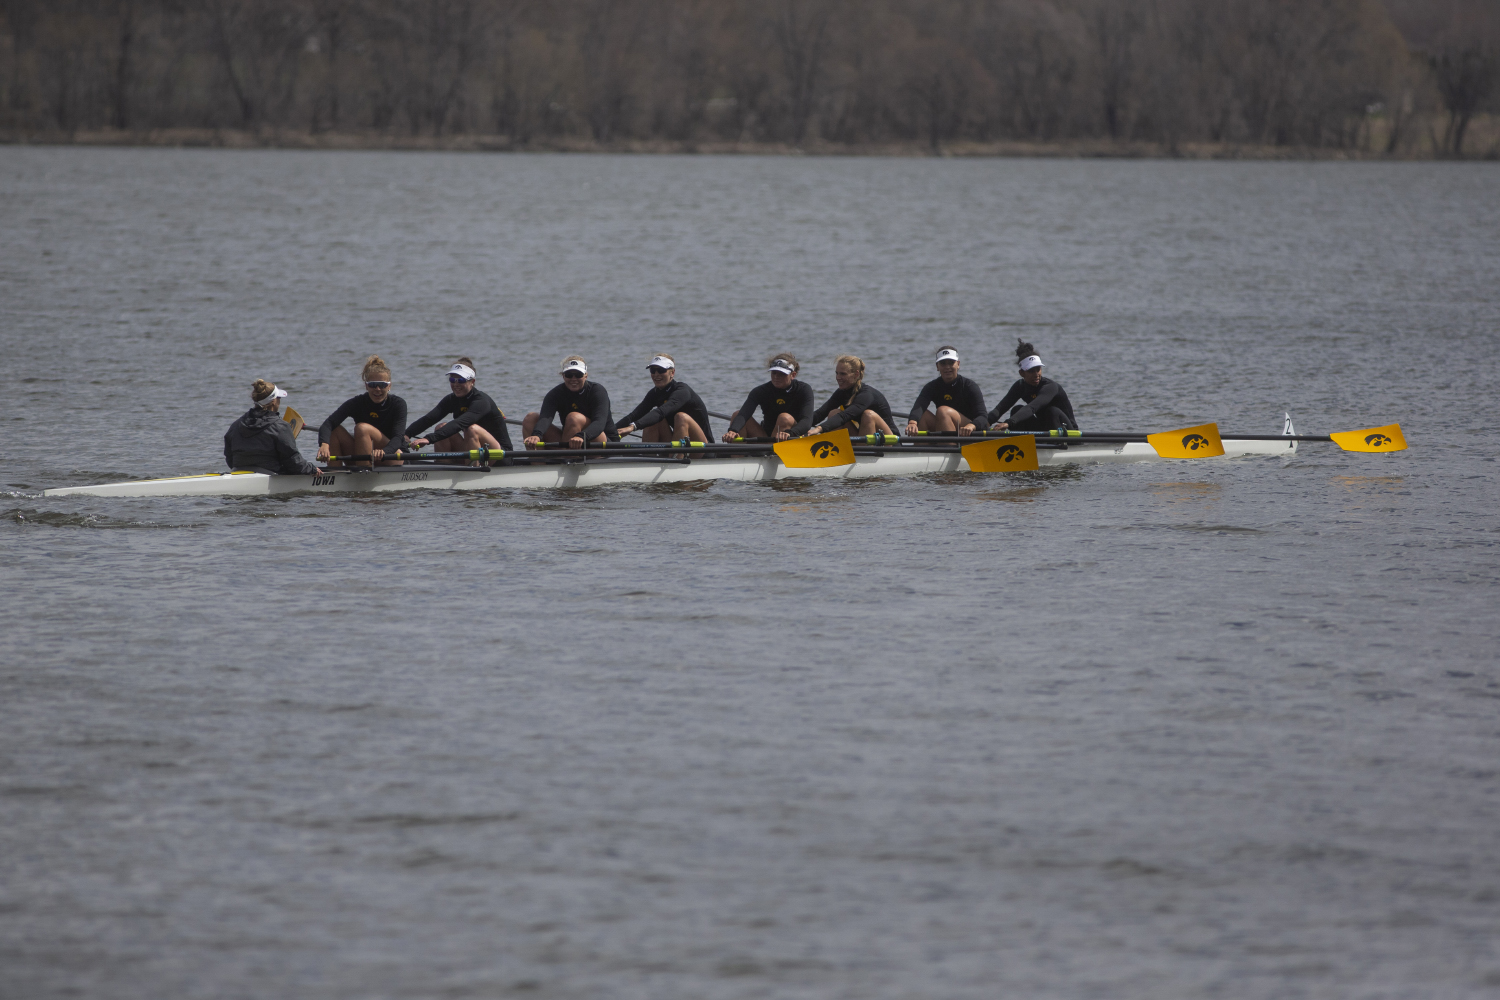 The Iowa varsity 8 crew looks to their supporters on the shore as they row back to the dock at the end of the first session of a women's rowing meet on Lake MacBride on Saturday April 13, 2019.